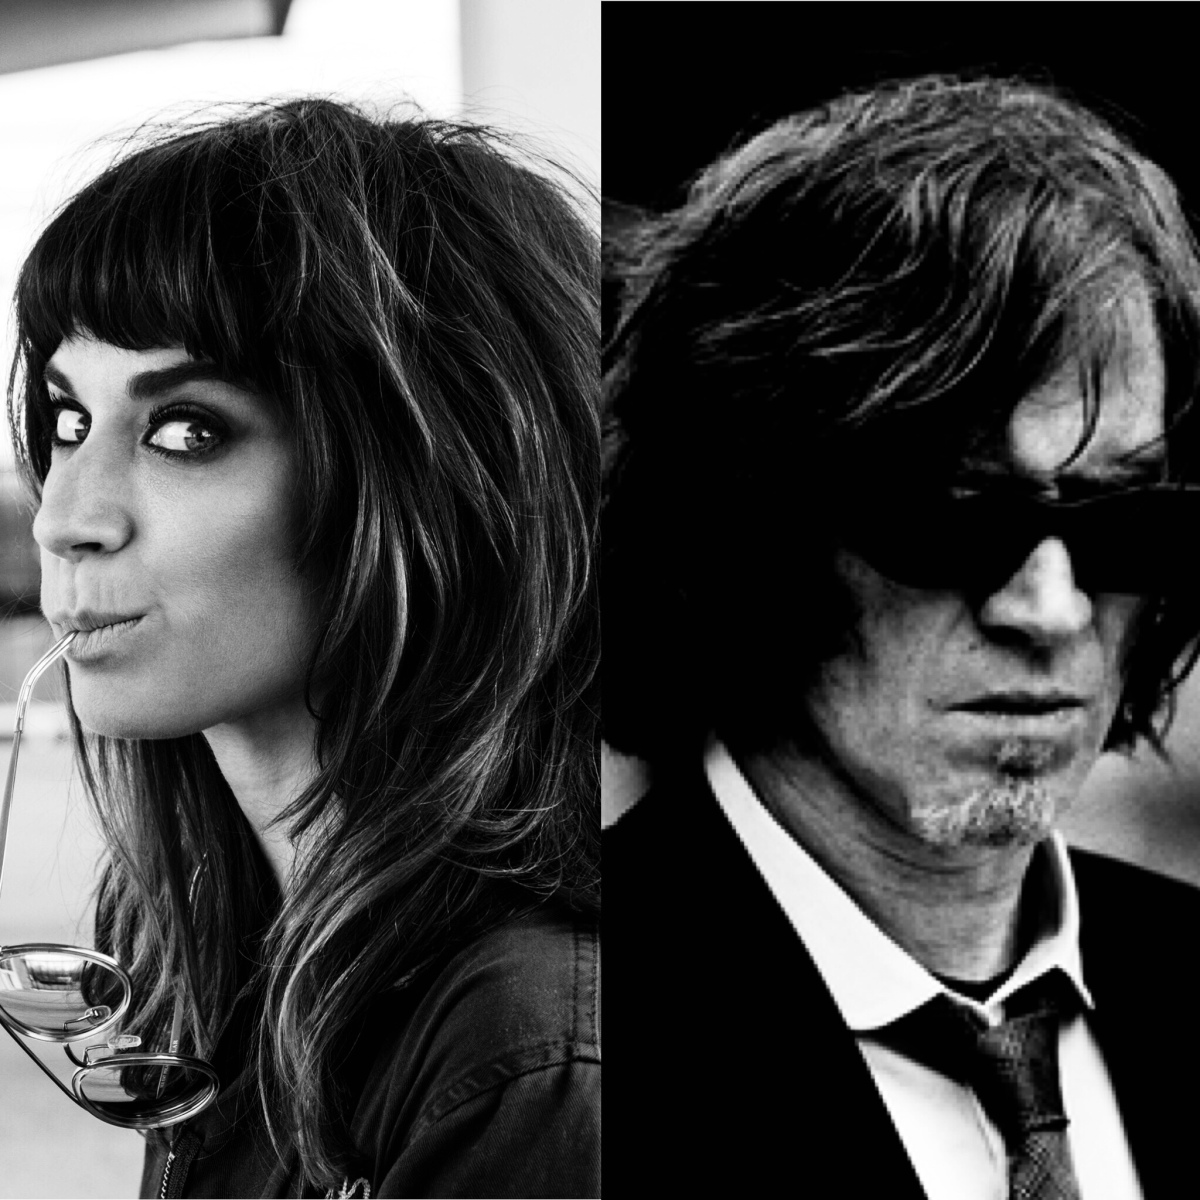 Nicole Atkins feat. Mark Lanegan: November Rain